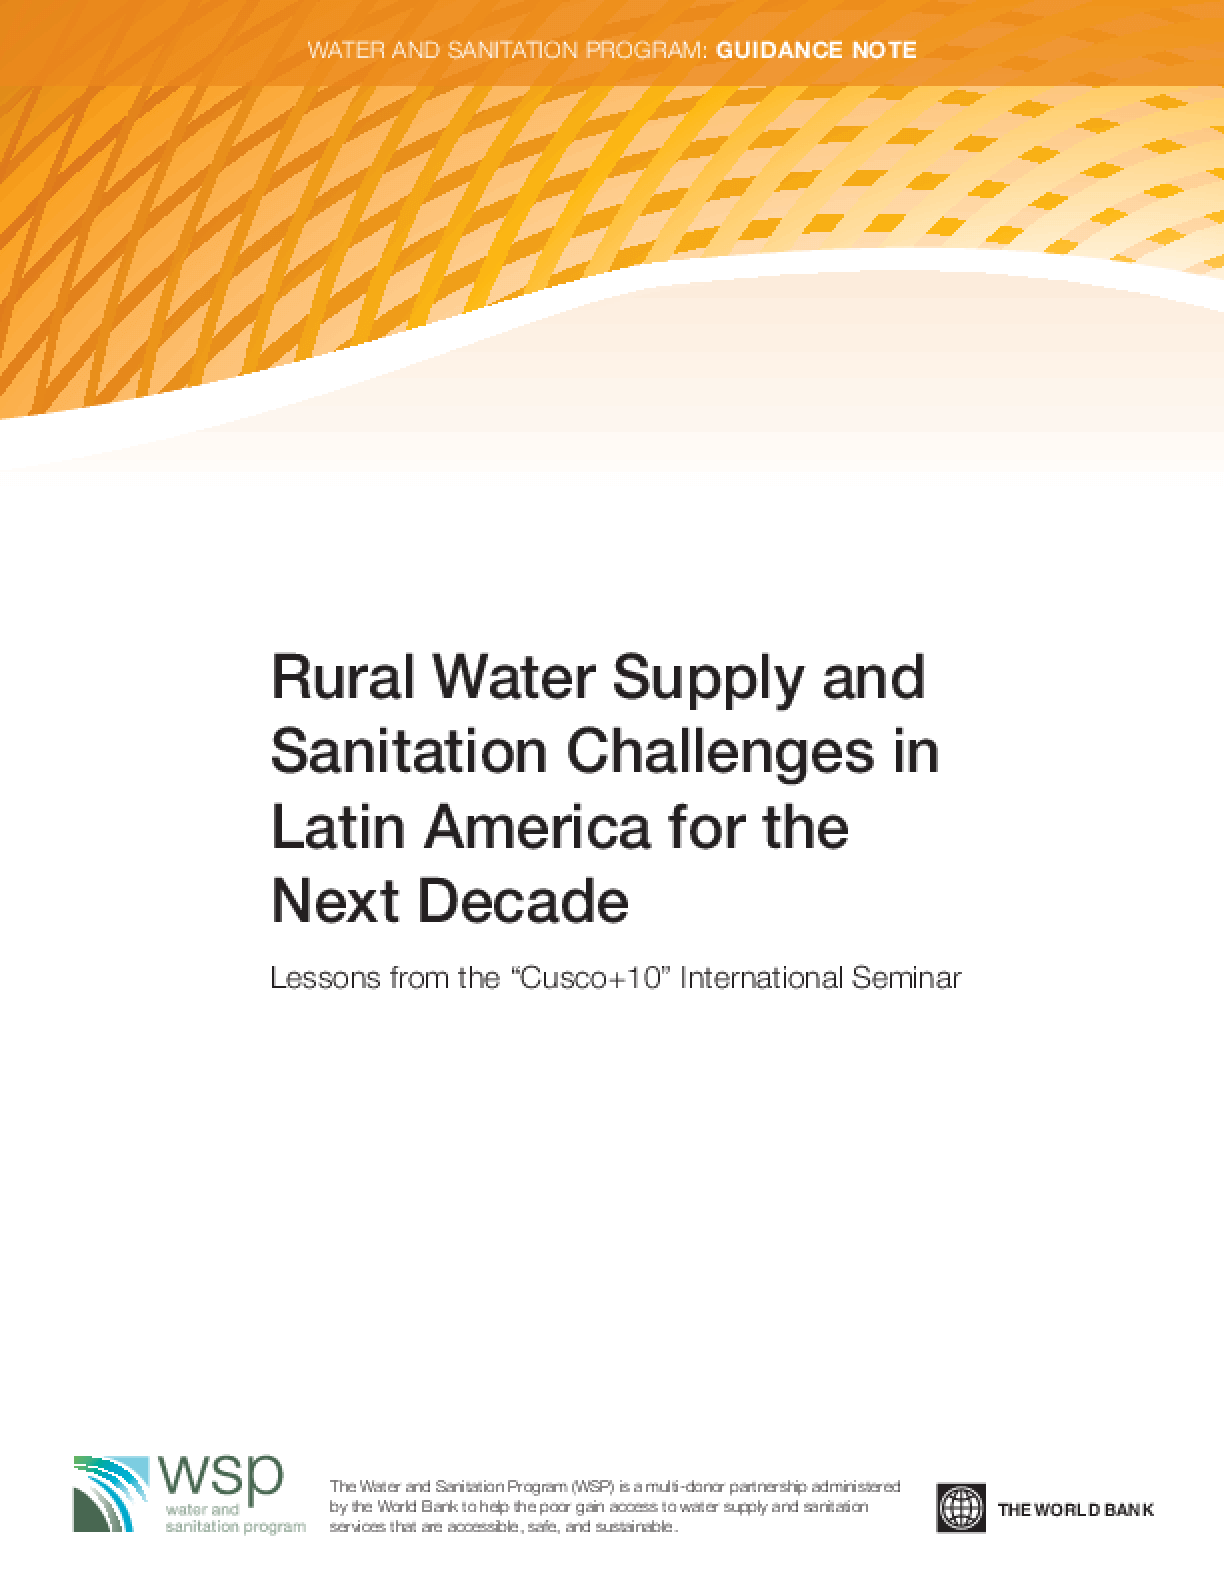 Rural Water Supply and Sanitation Challenges in Latin America for the Next Decade